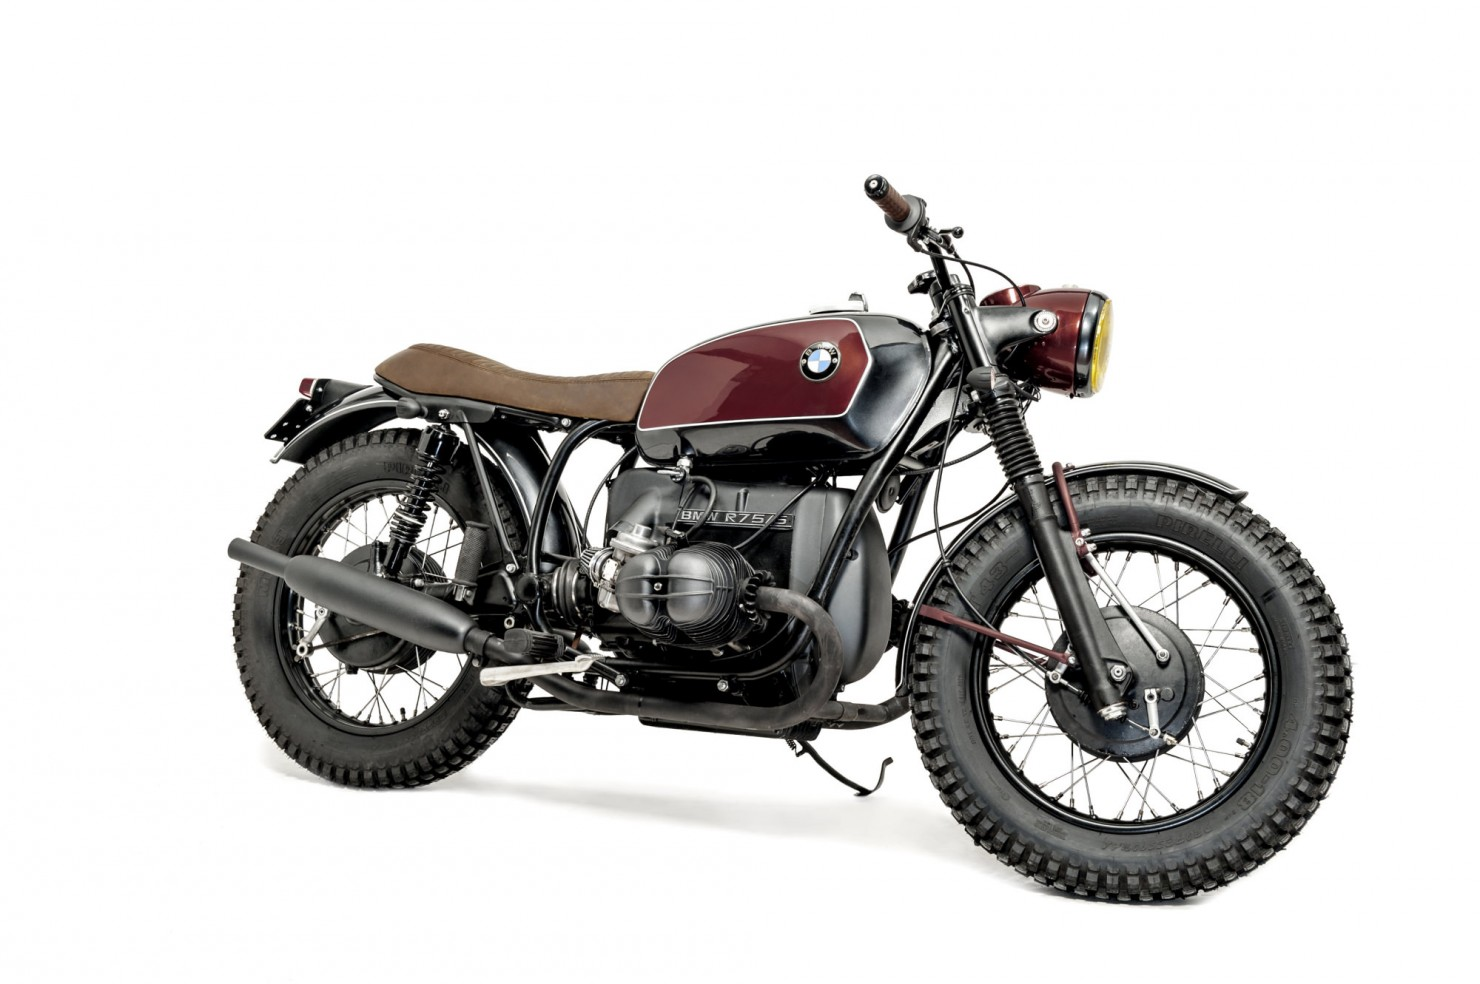 BMW-R755-Motorcycle-4